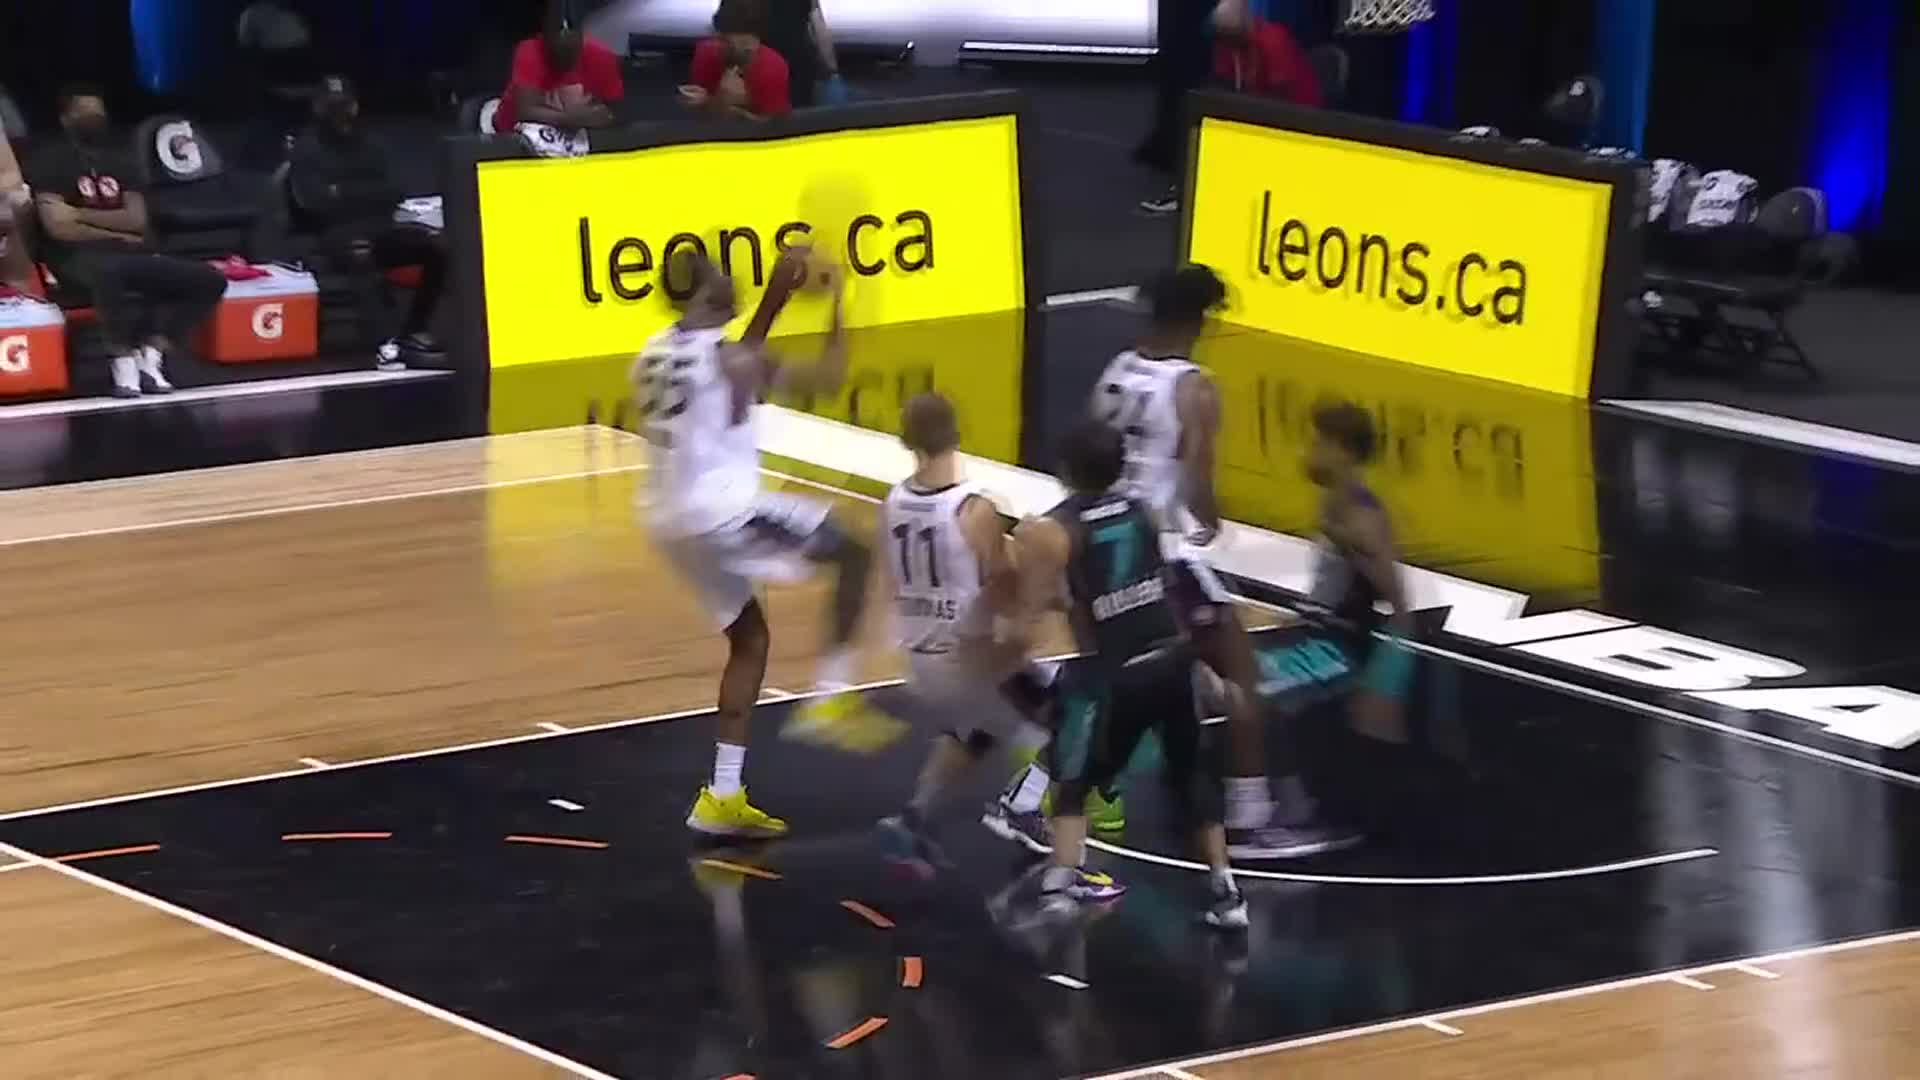 Game Highlights: Raptors 905 vs Greensboro Swarm - February 26, 2021